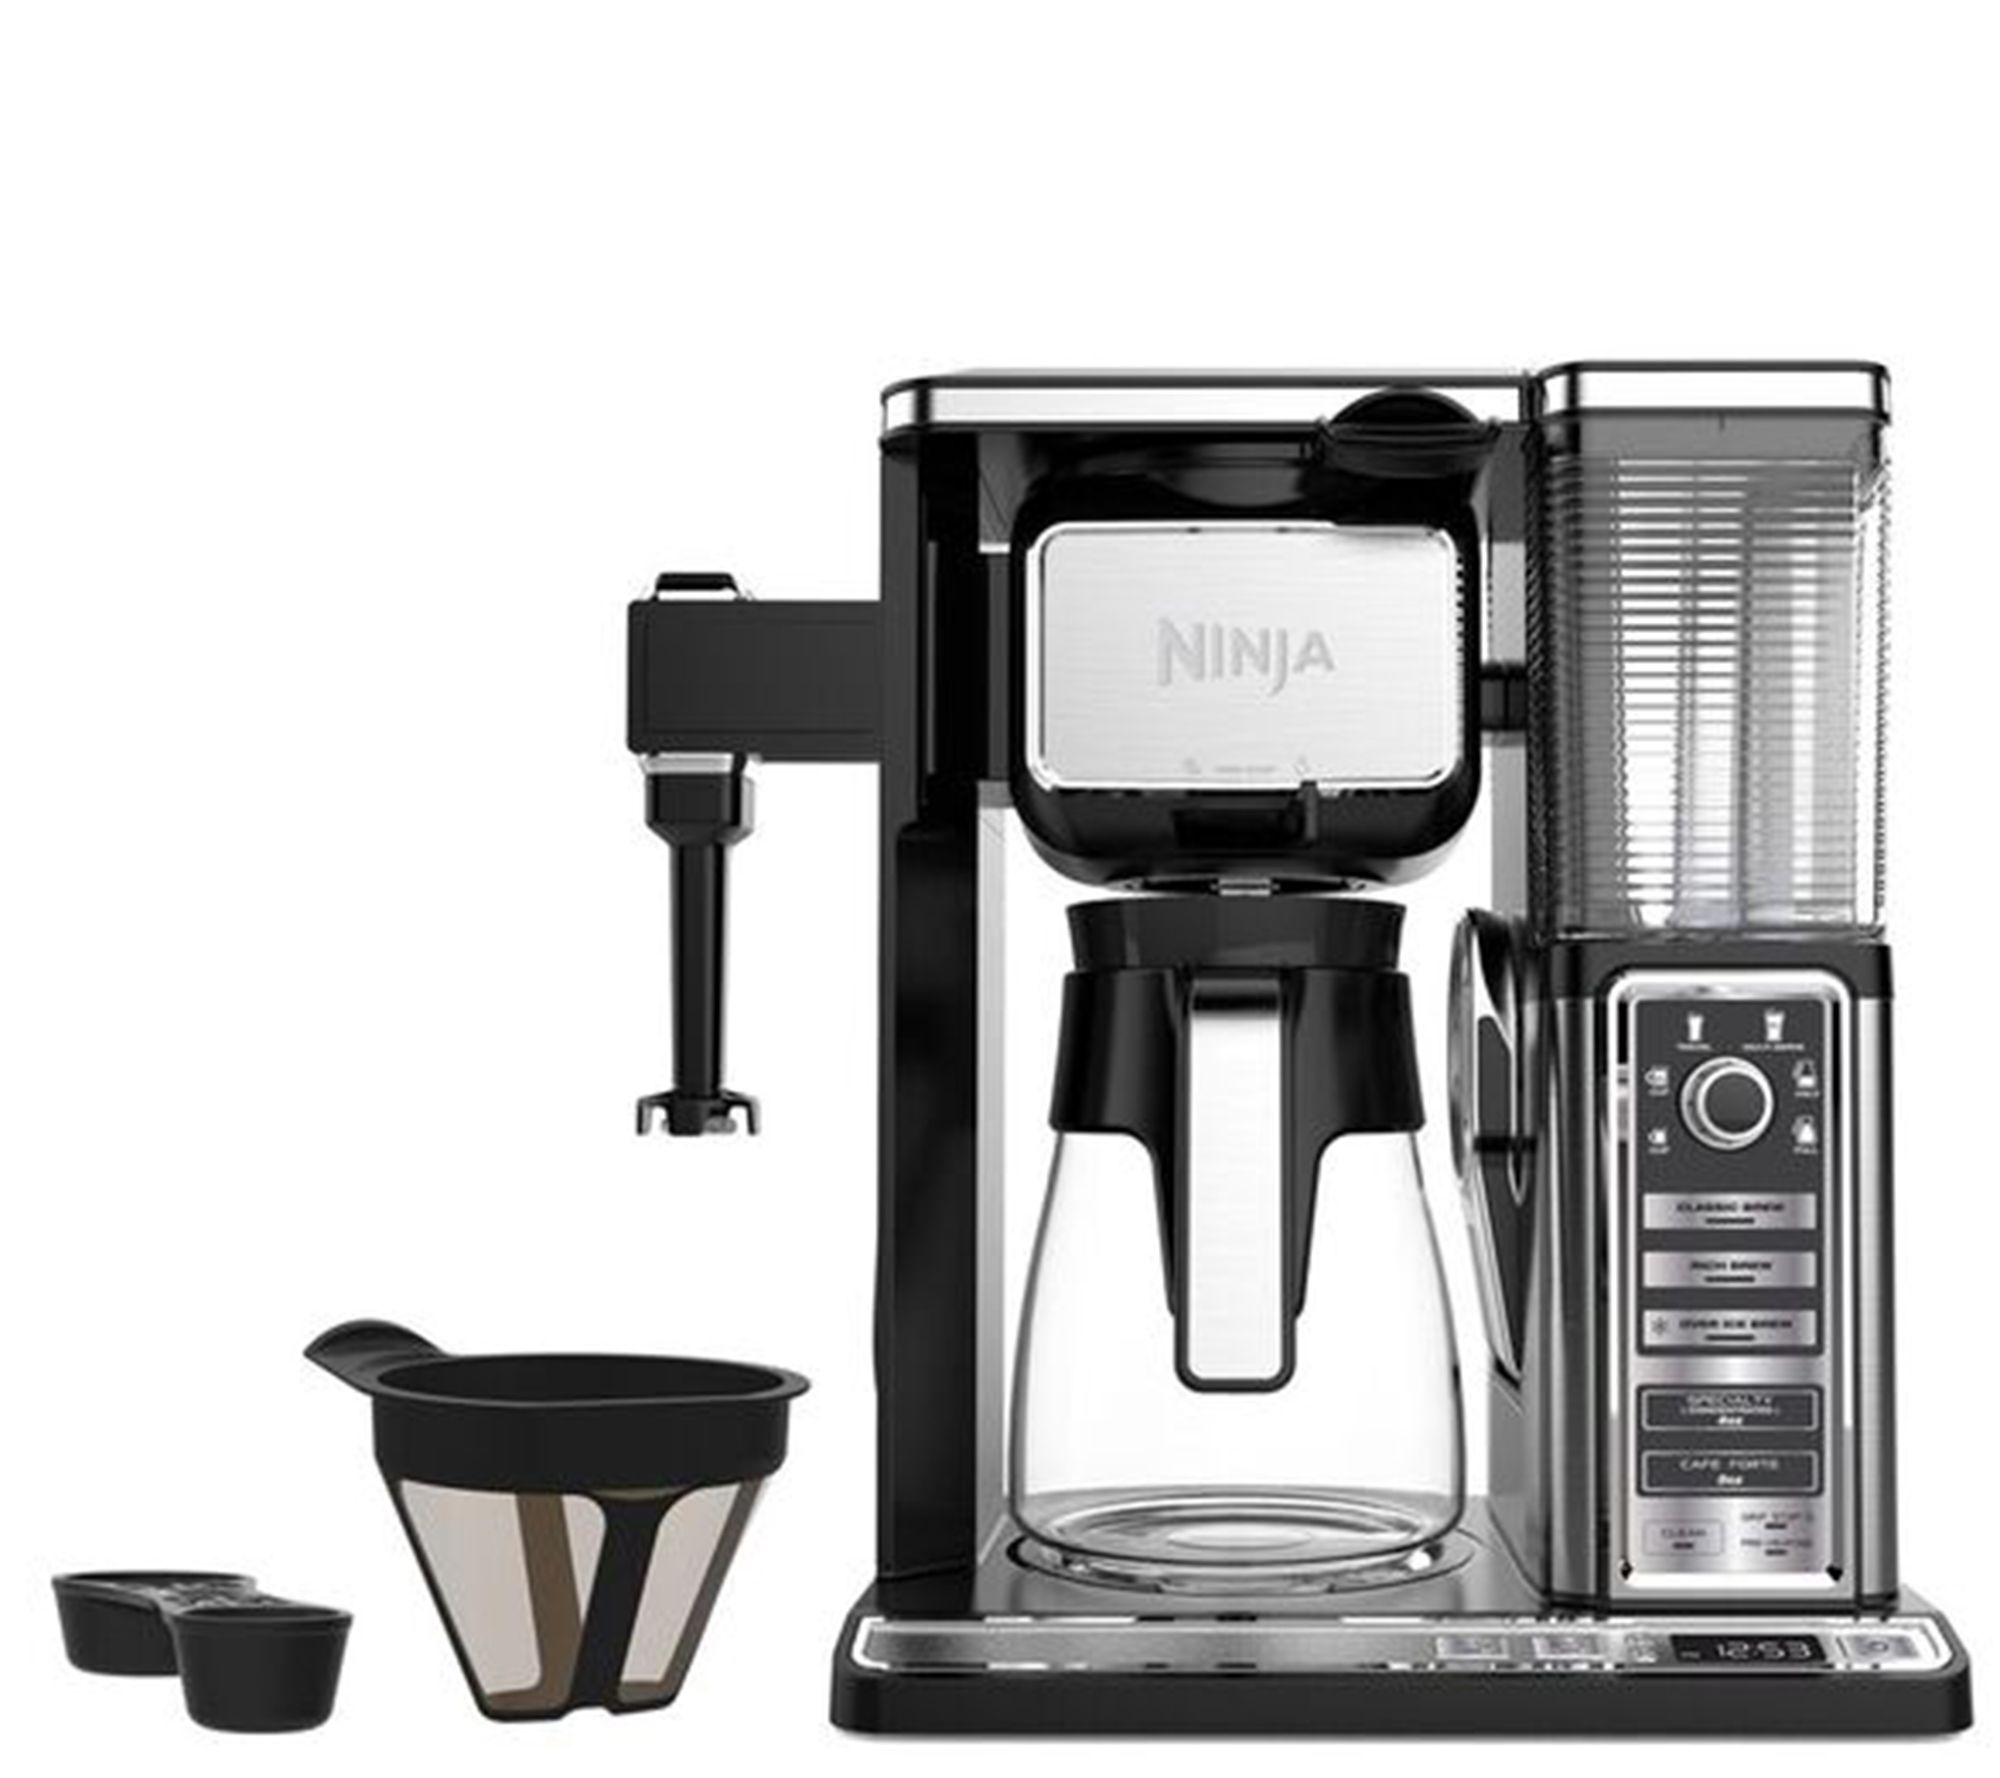 Uncategorized Boots Kitchen Appliances Free Delivery Code kitchen appliances qvc com ninja coffee bar with glass carafe and built infrother k305814